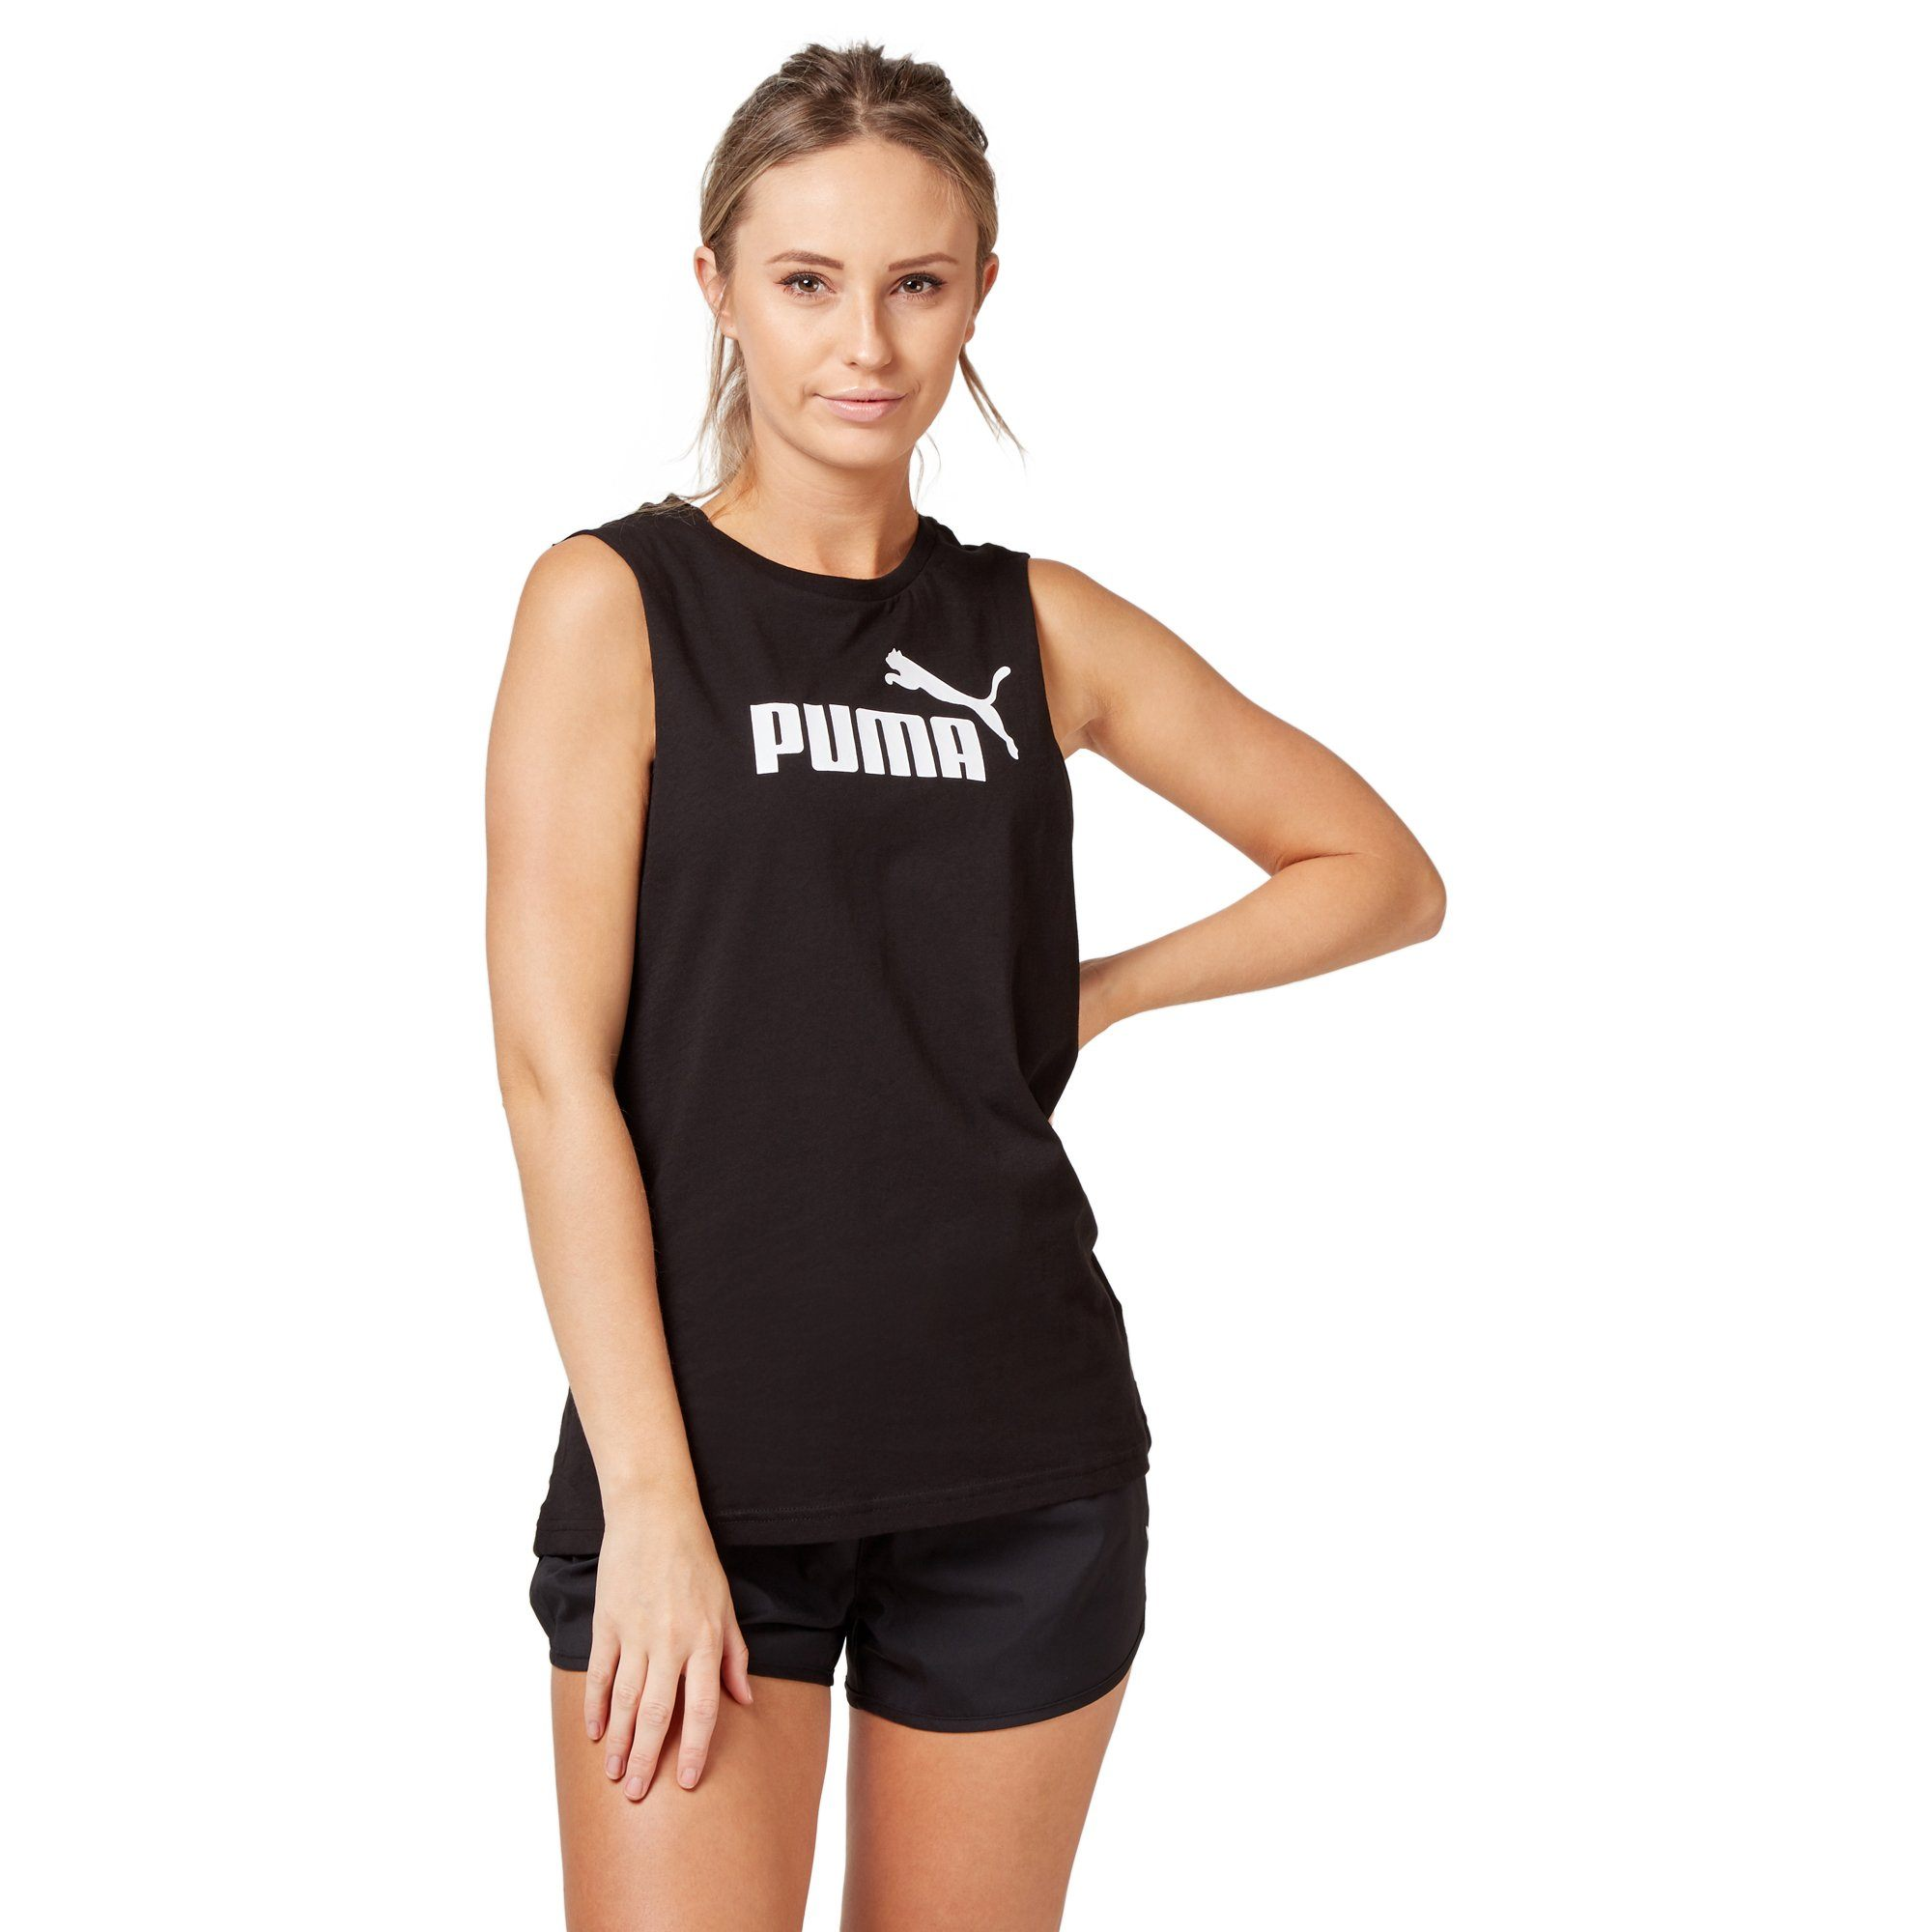 Puma Women's Cut Off Boyfriend Tank - Black Apparel Puma